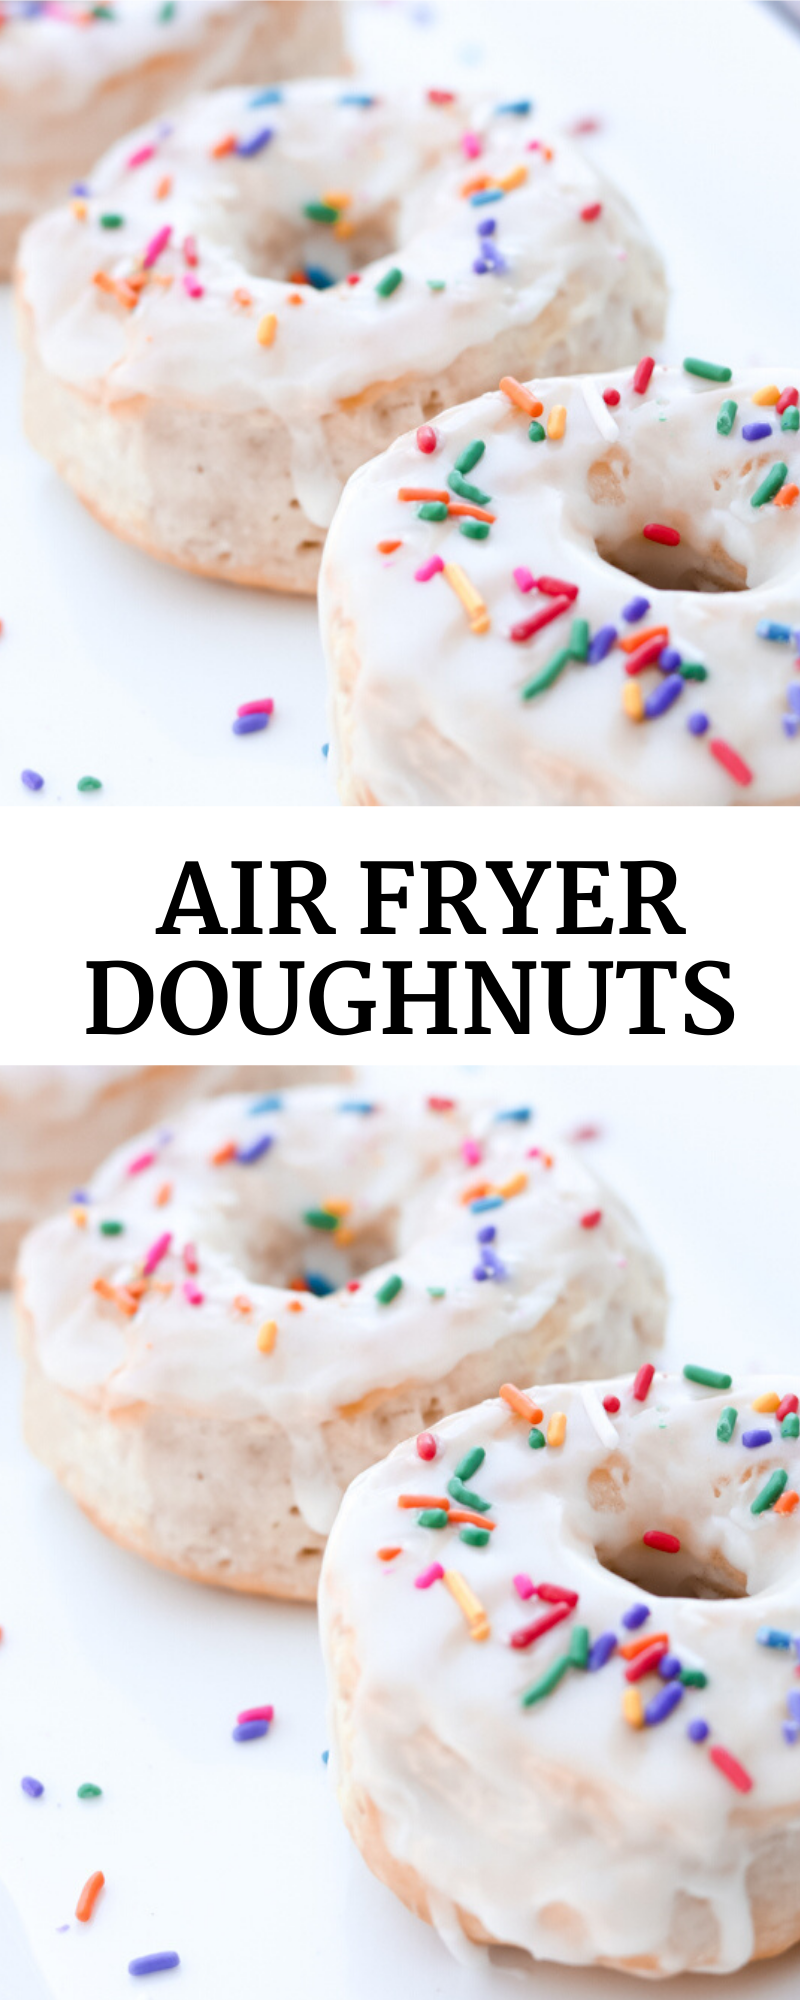 Air Fryer Doughnuts with Biscuits